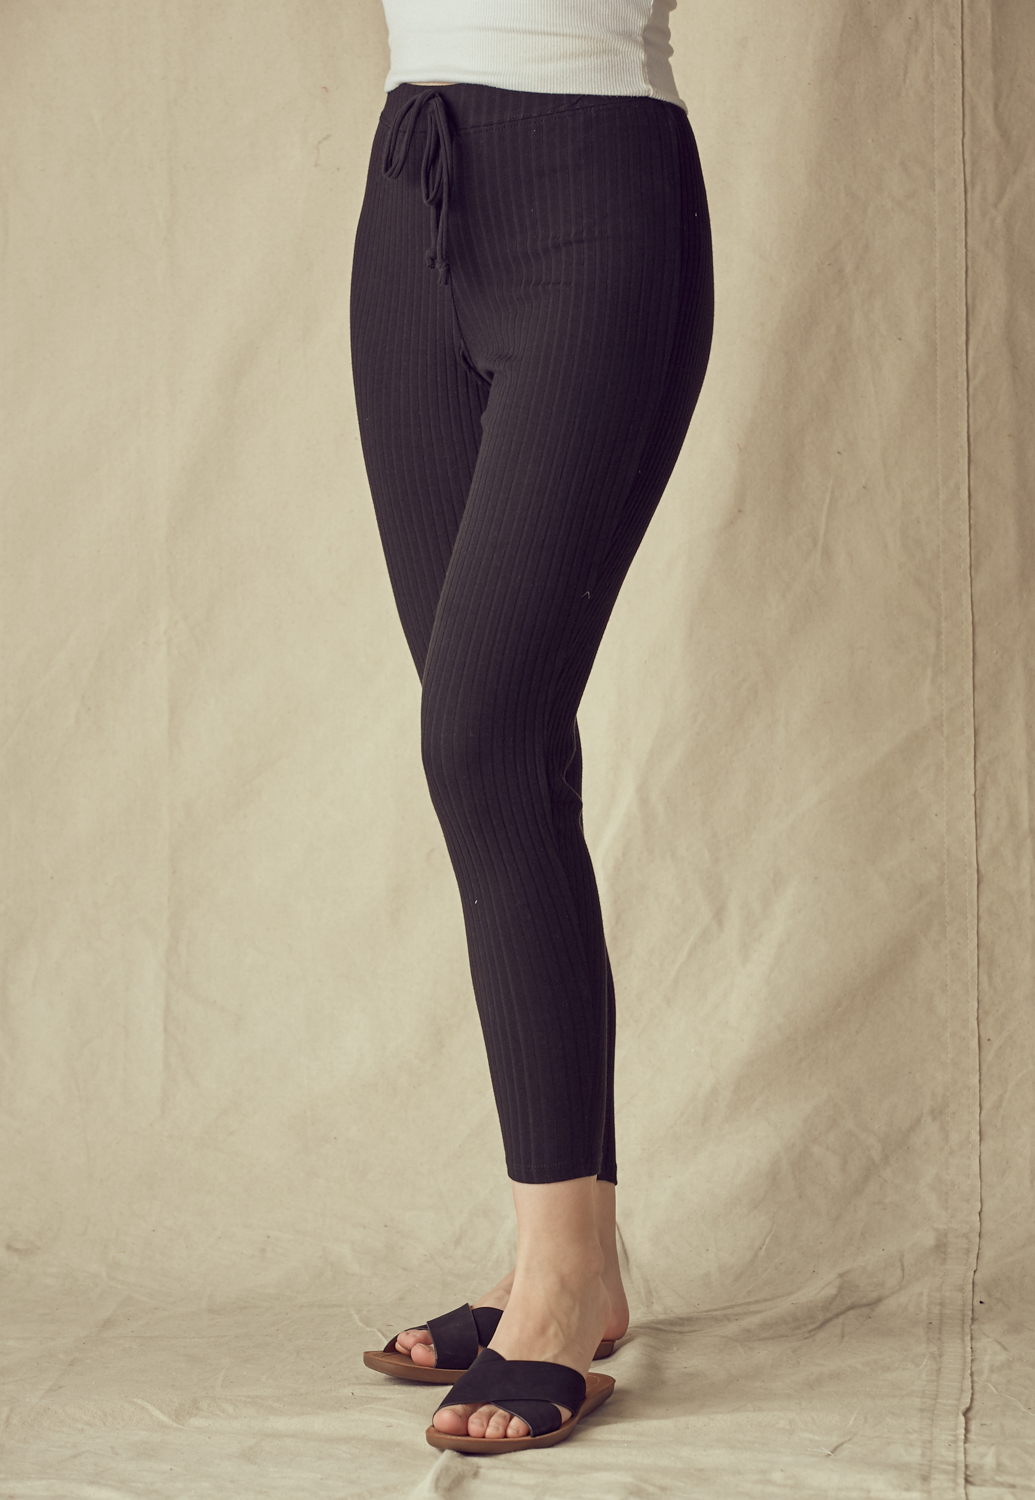 Rib Knit Leggings Pants